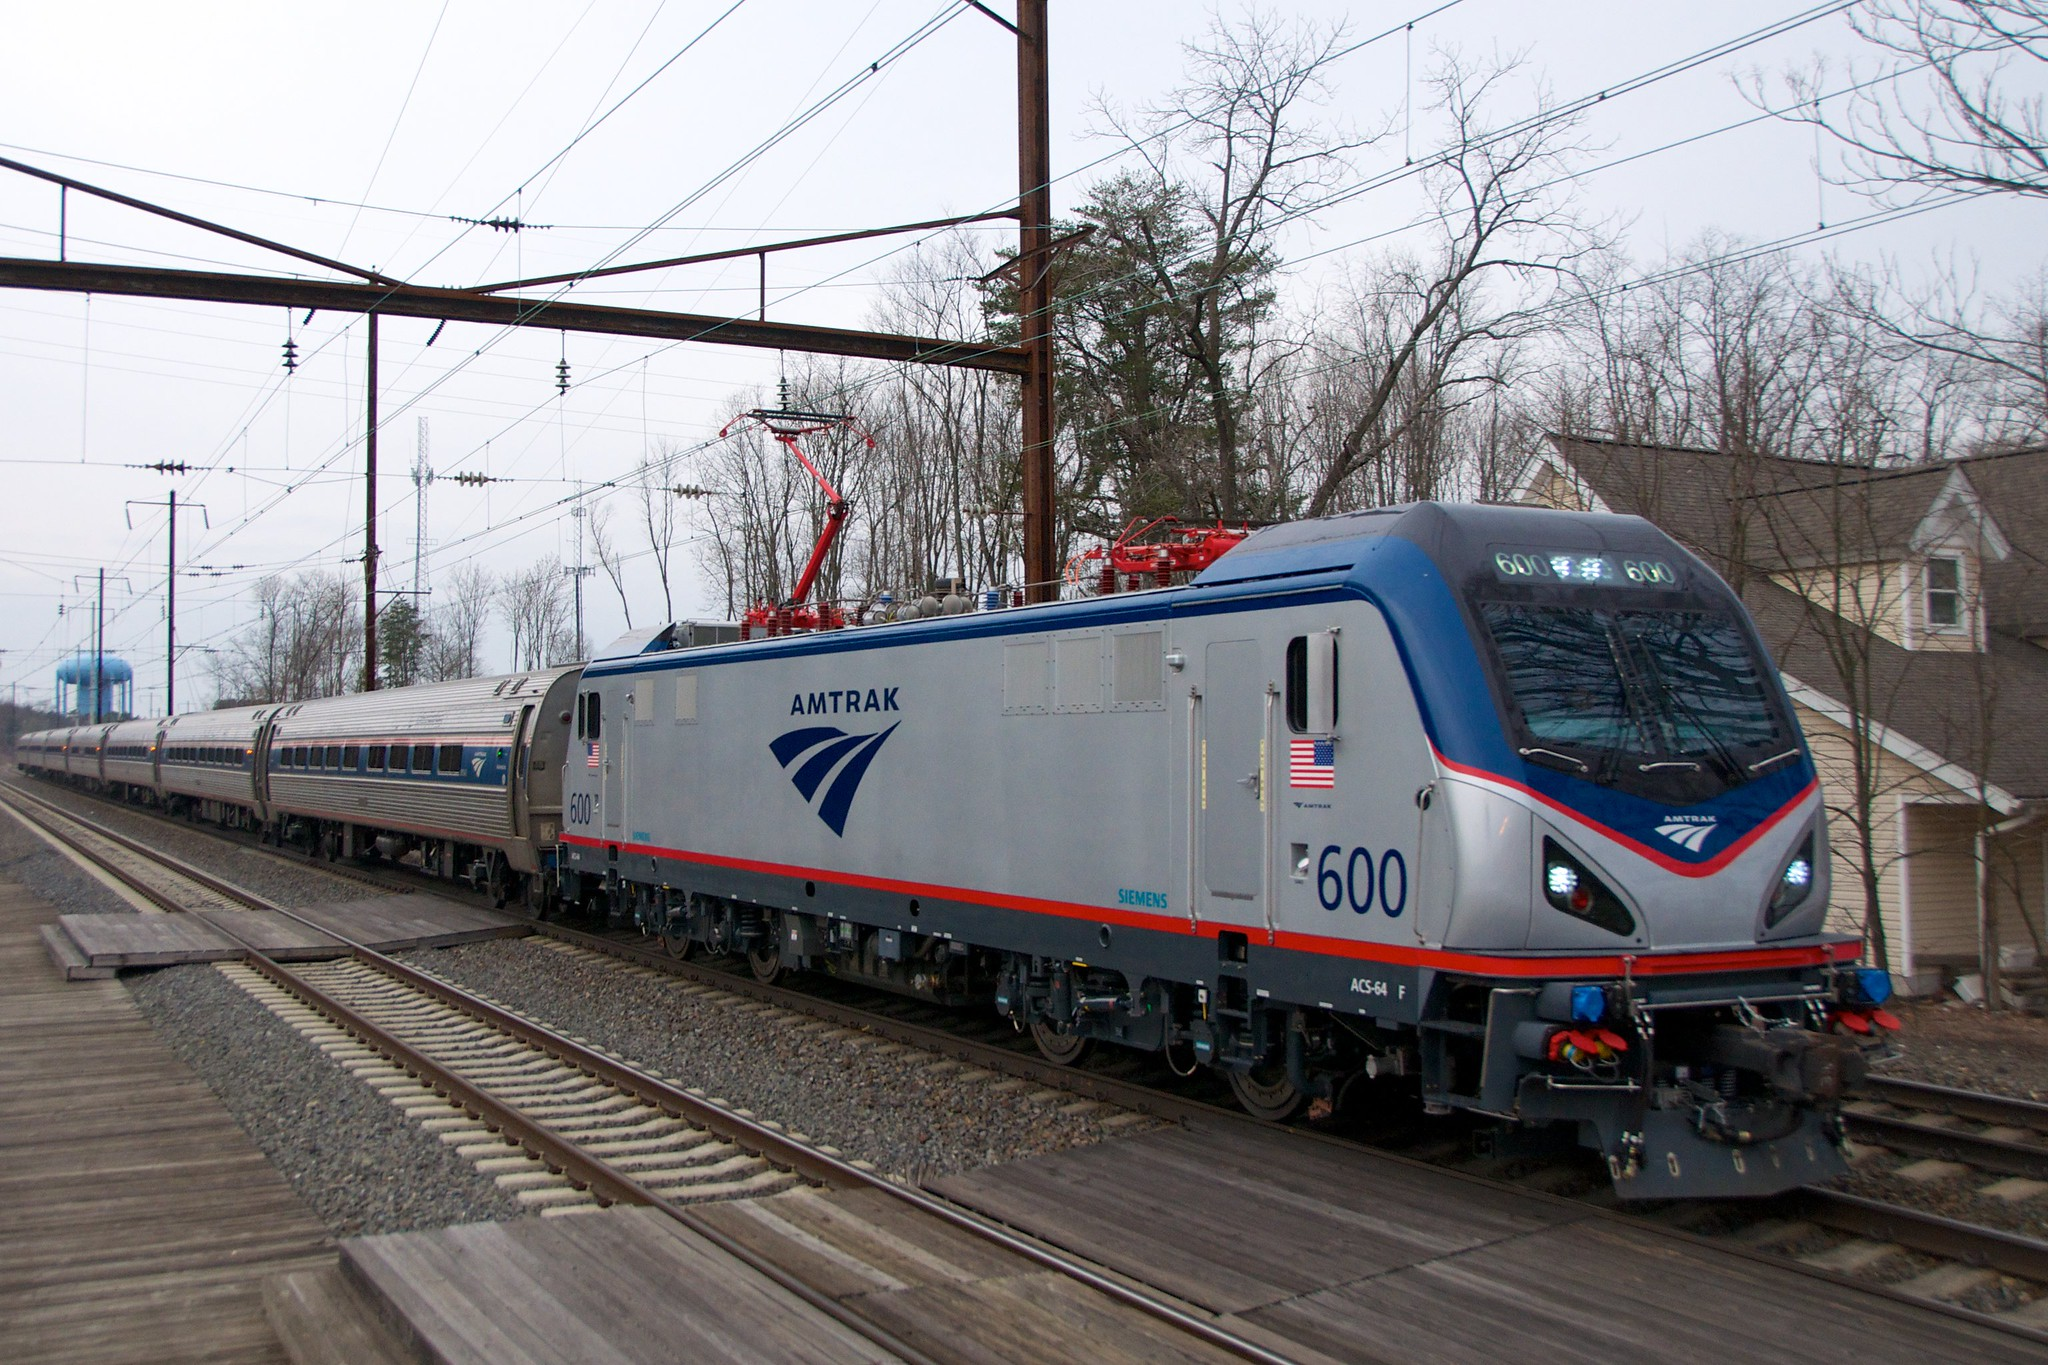 Amtrak: An Improved Booking Experience on the Move